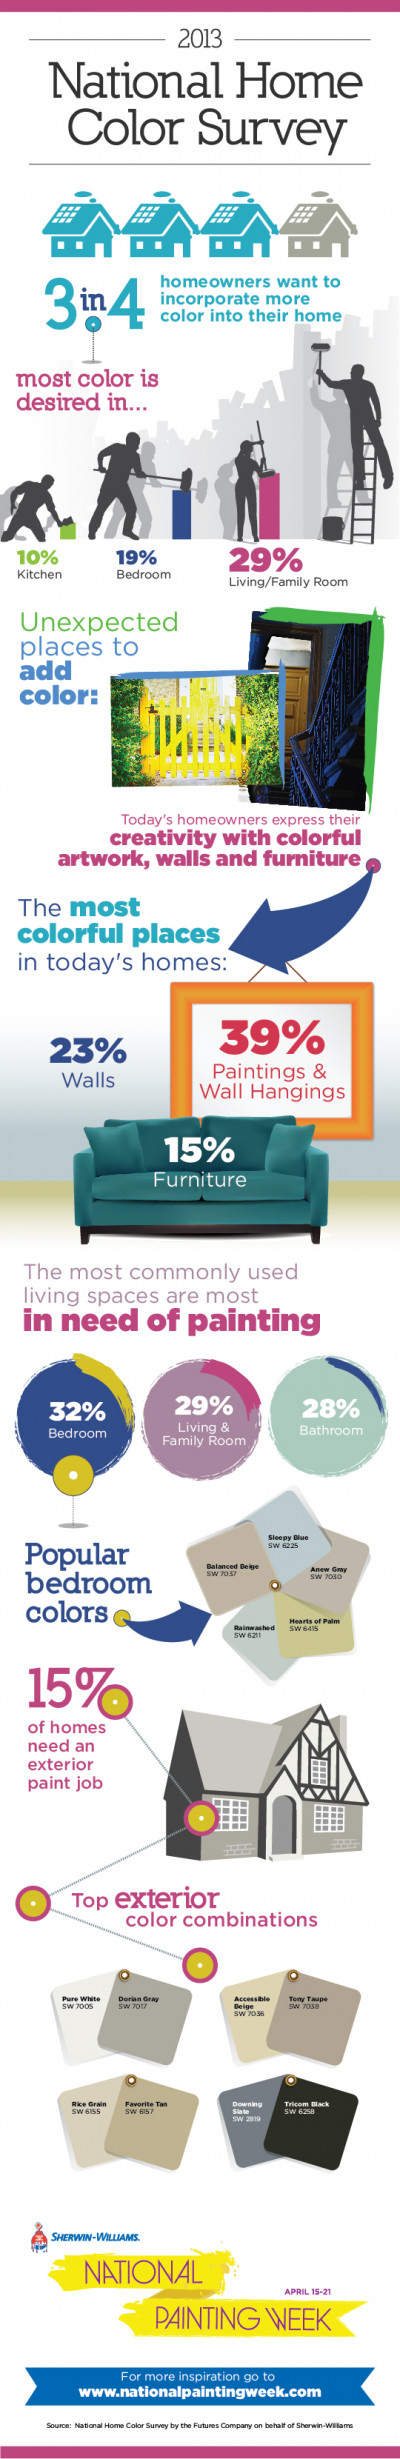 National Home Color Survey